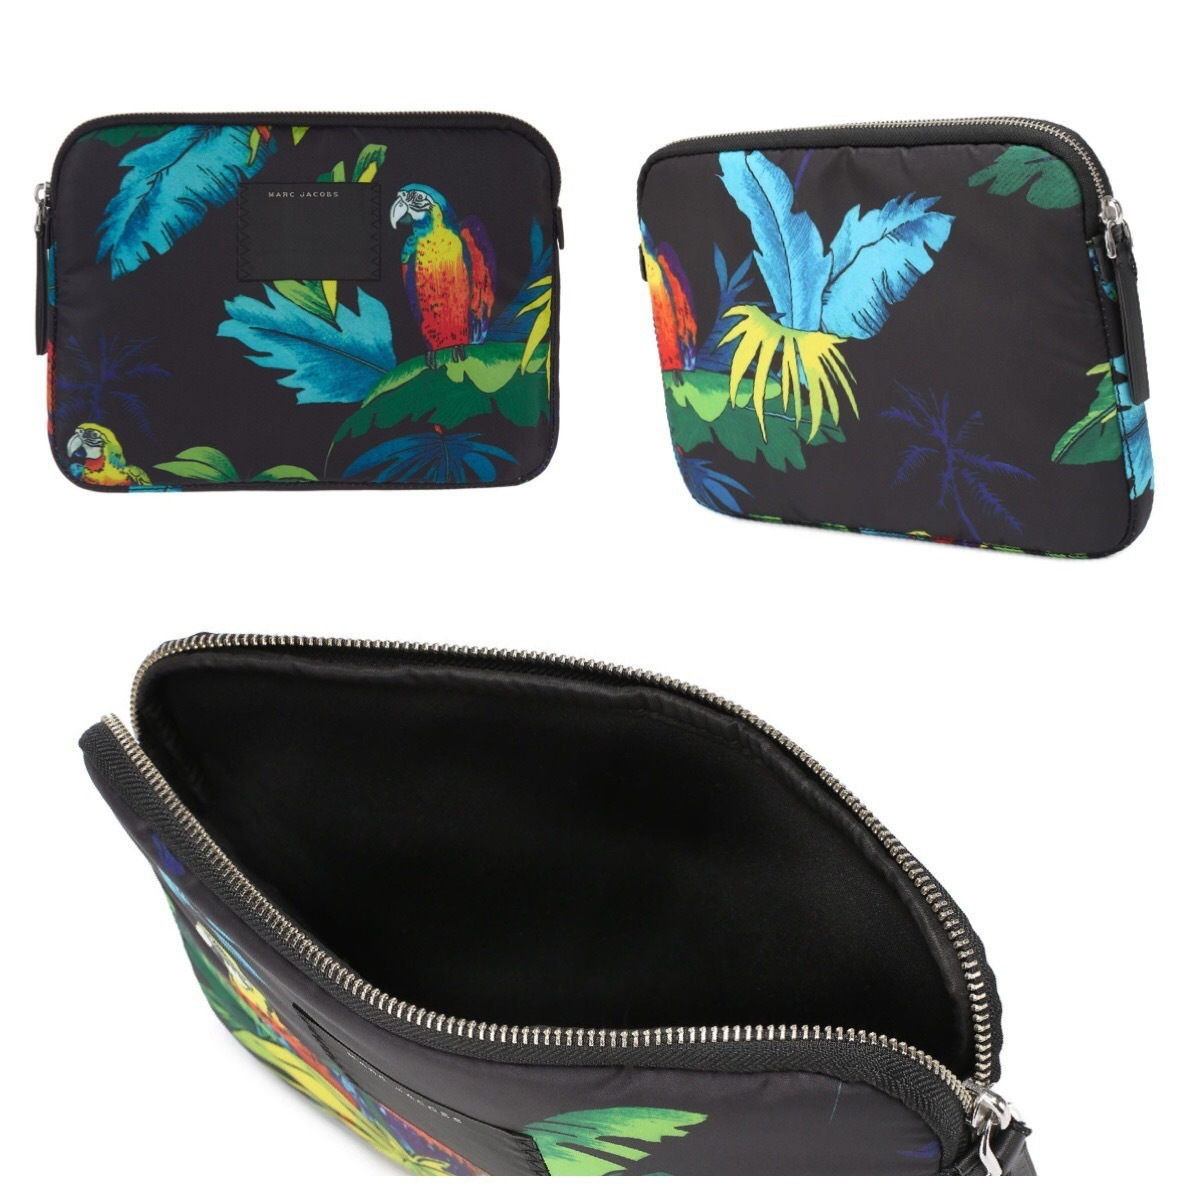 MARC JACOBS / iPad Air/Air2/Pro9.7inch/5 Case / Parrot Print